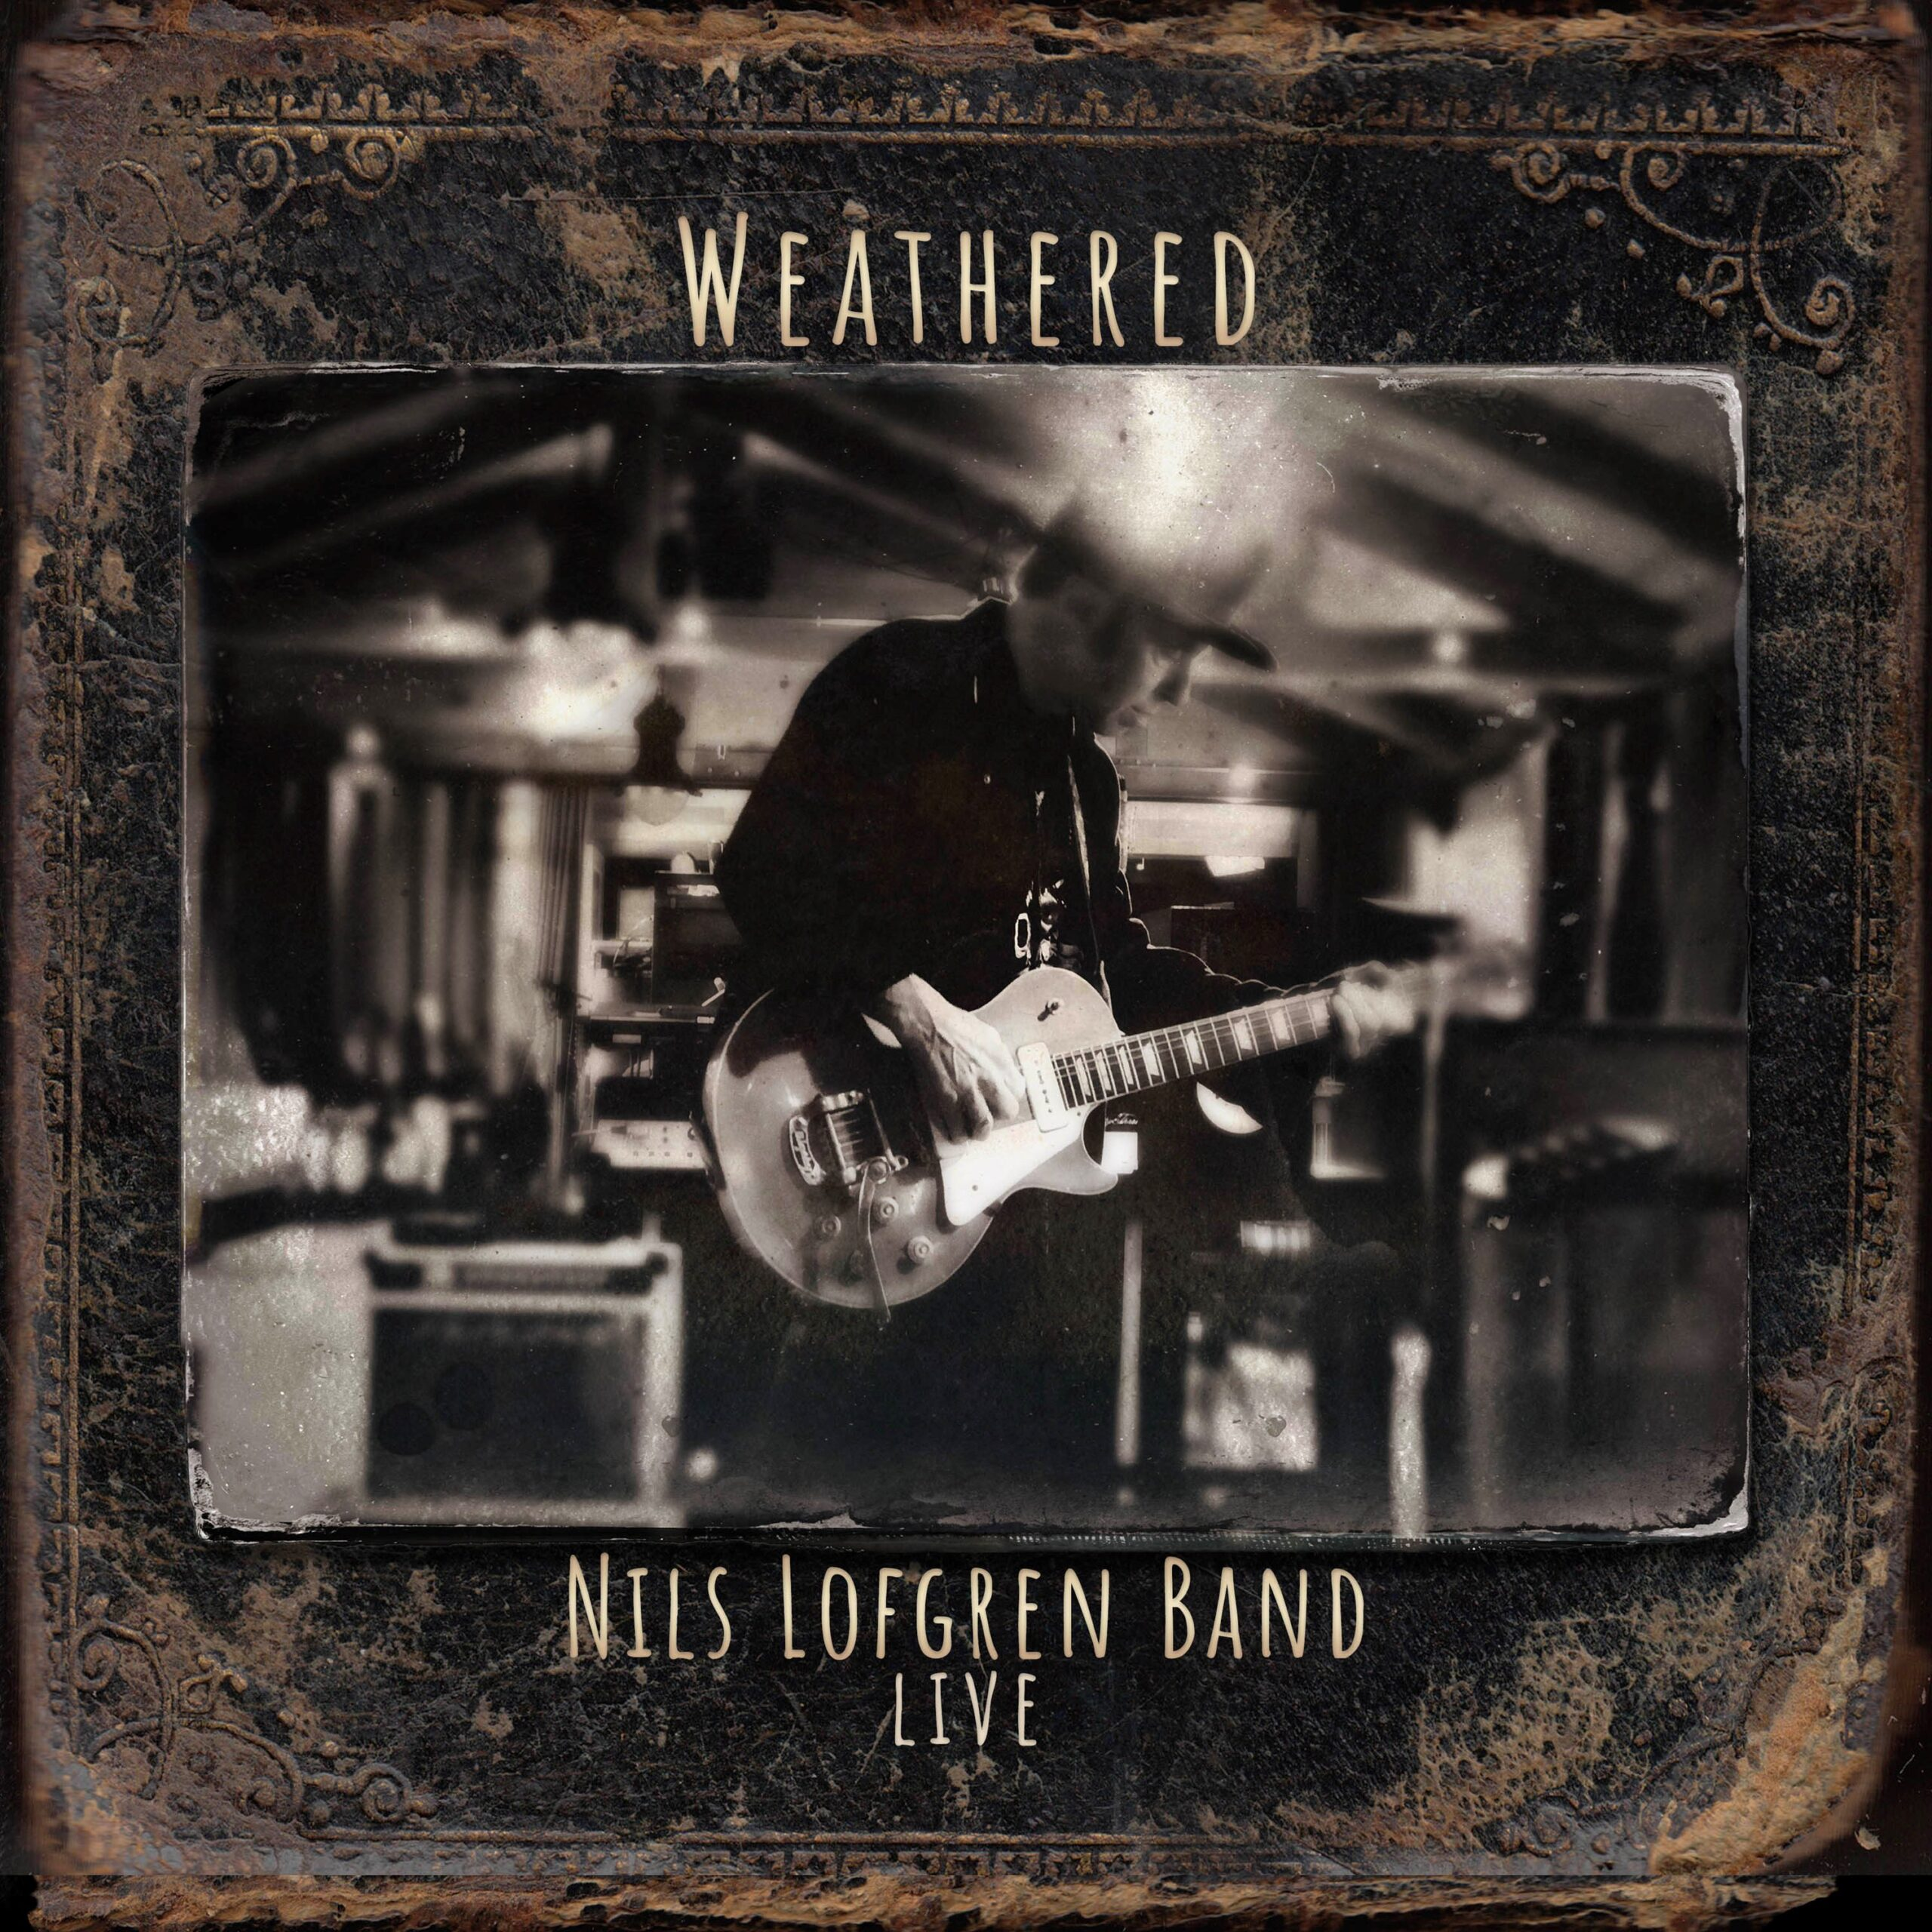 Nils Lofgren Band (Live) – Weathered